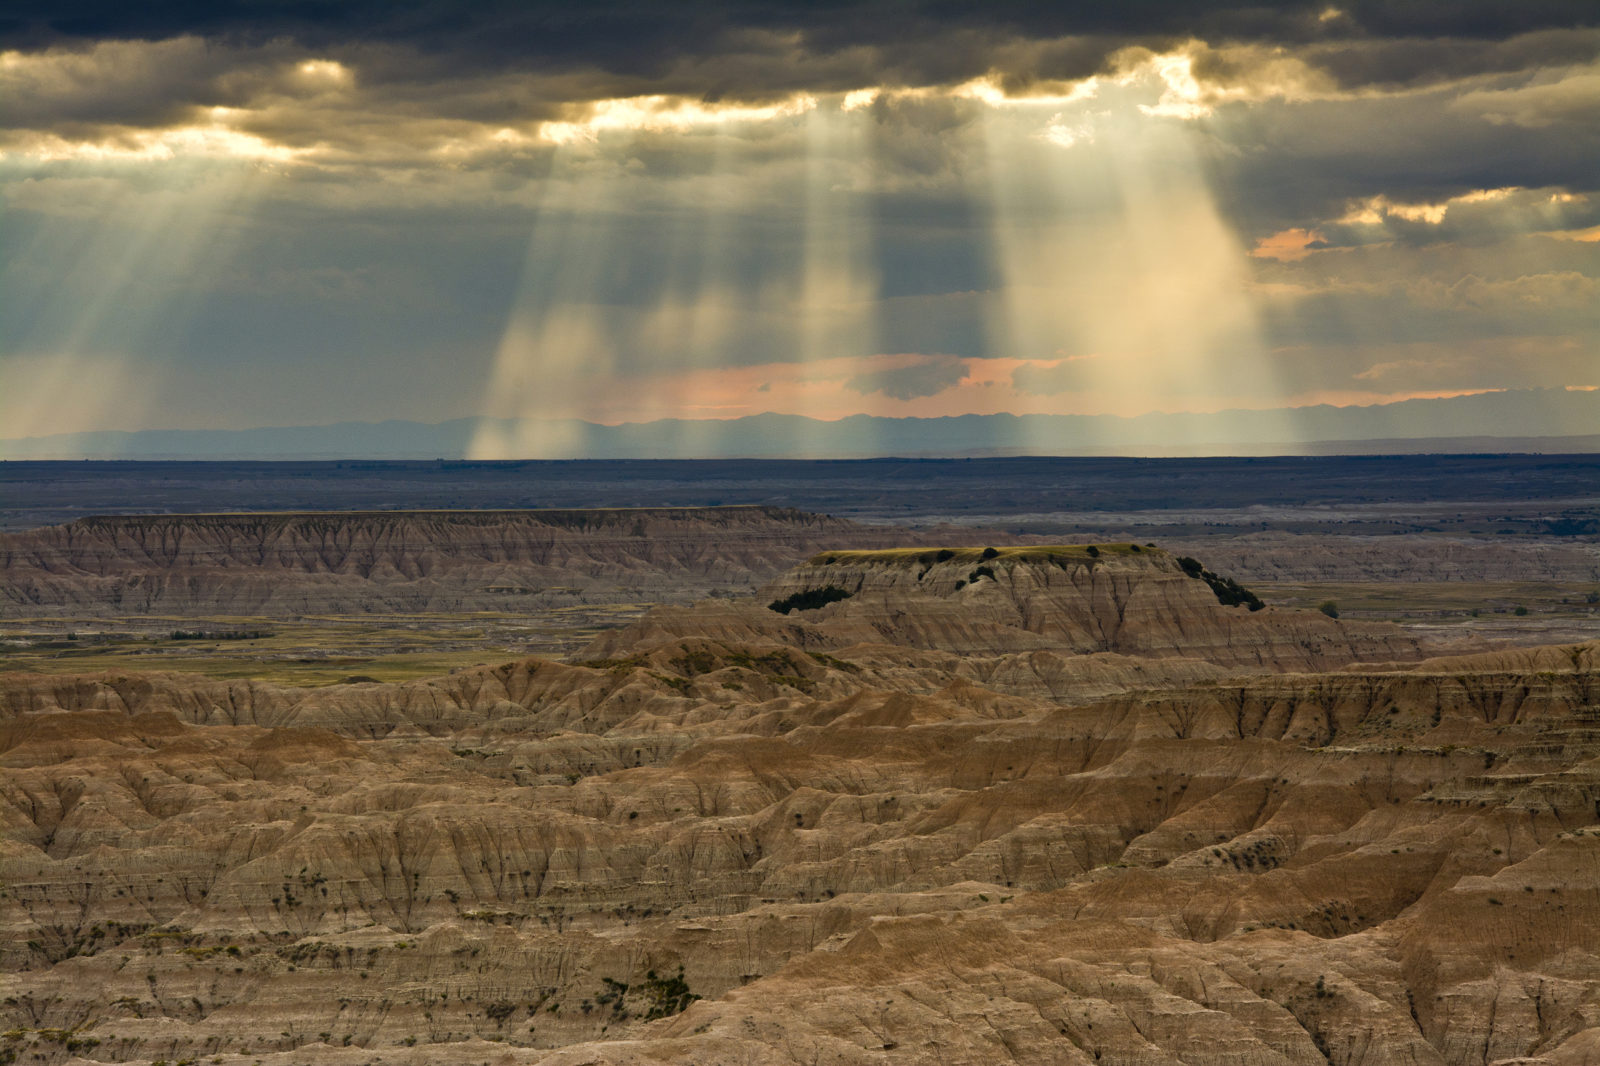 Crepuscular Rays over the Badlands